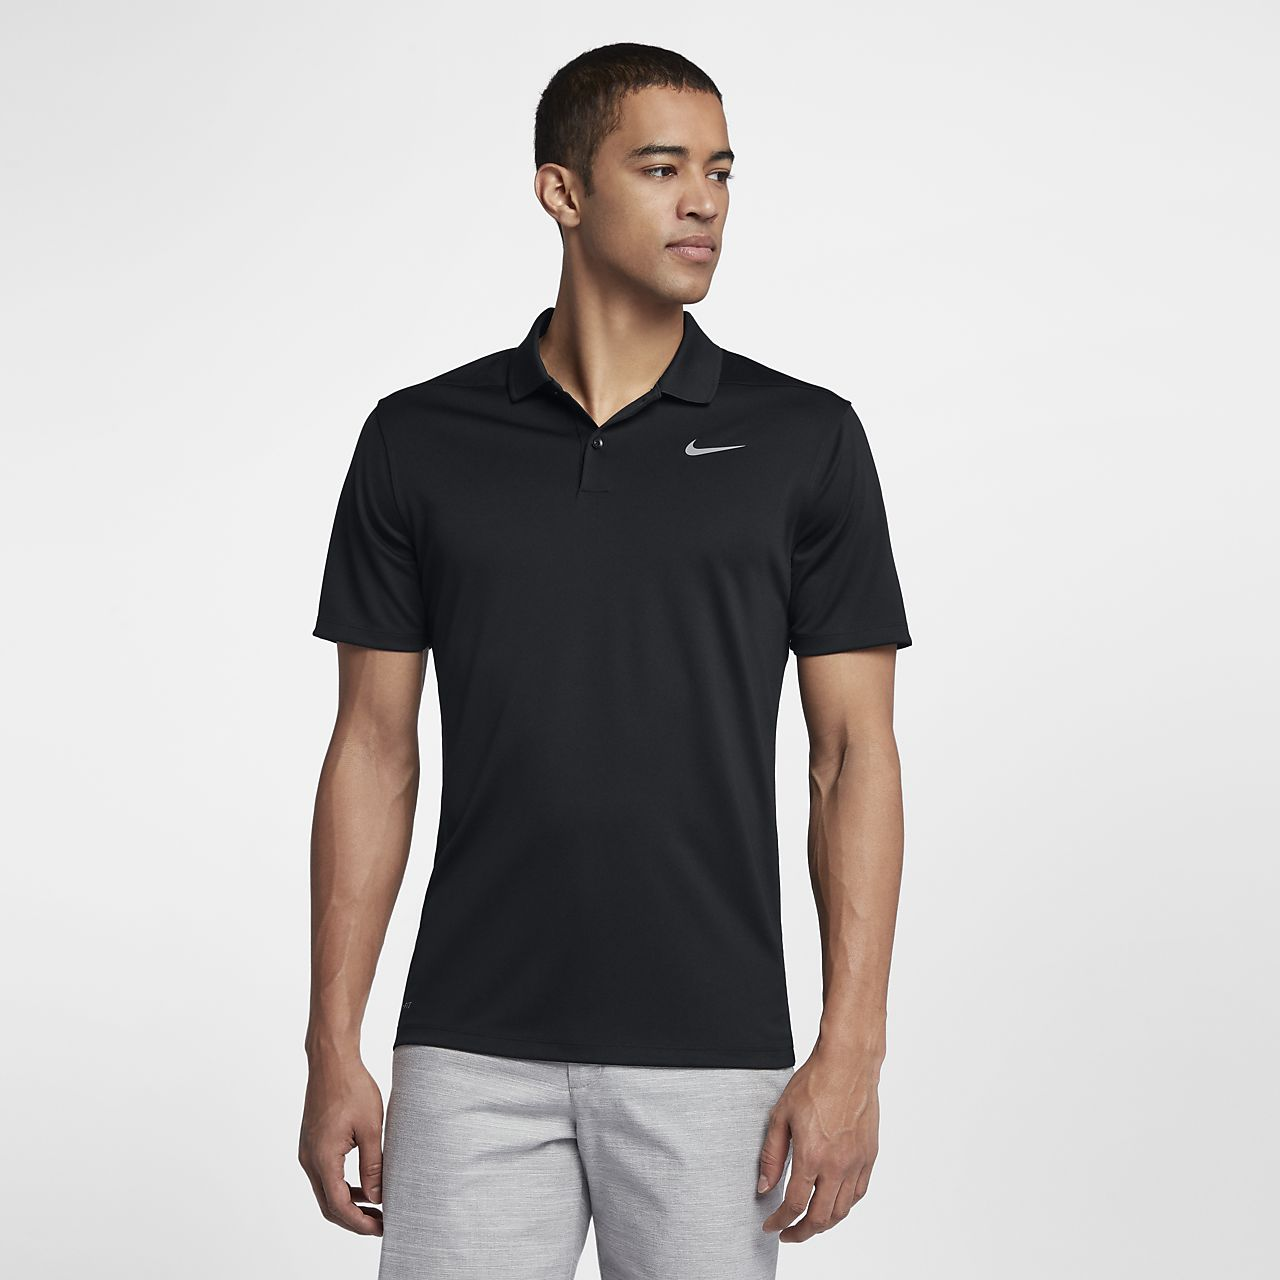 7fca7cd8 Nike Dri-FIT Victory Men's Slim-Fit Golf Polo. Nike.com VN